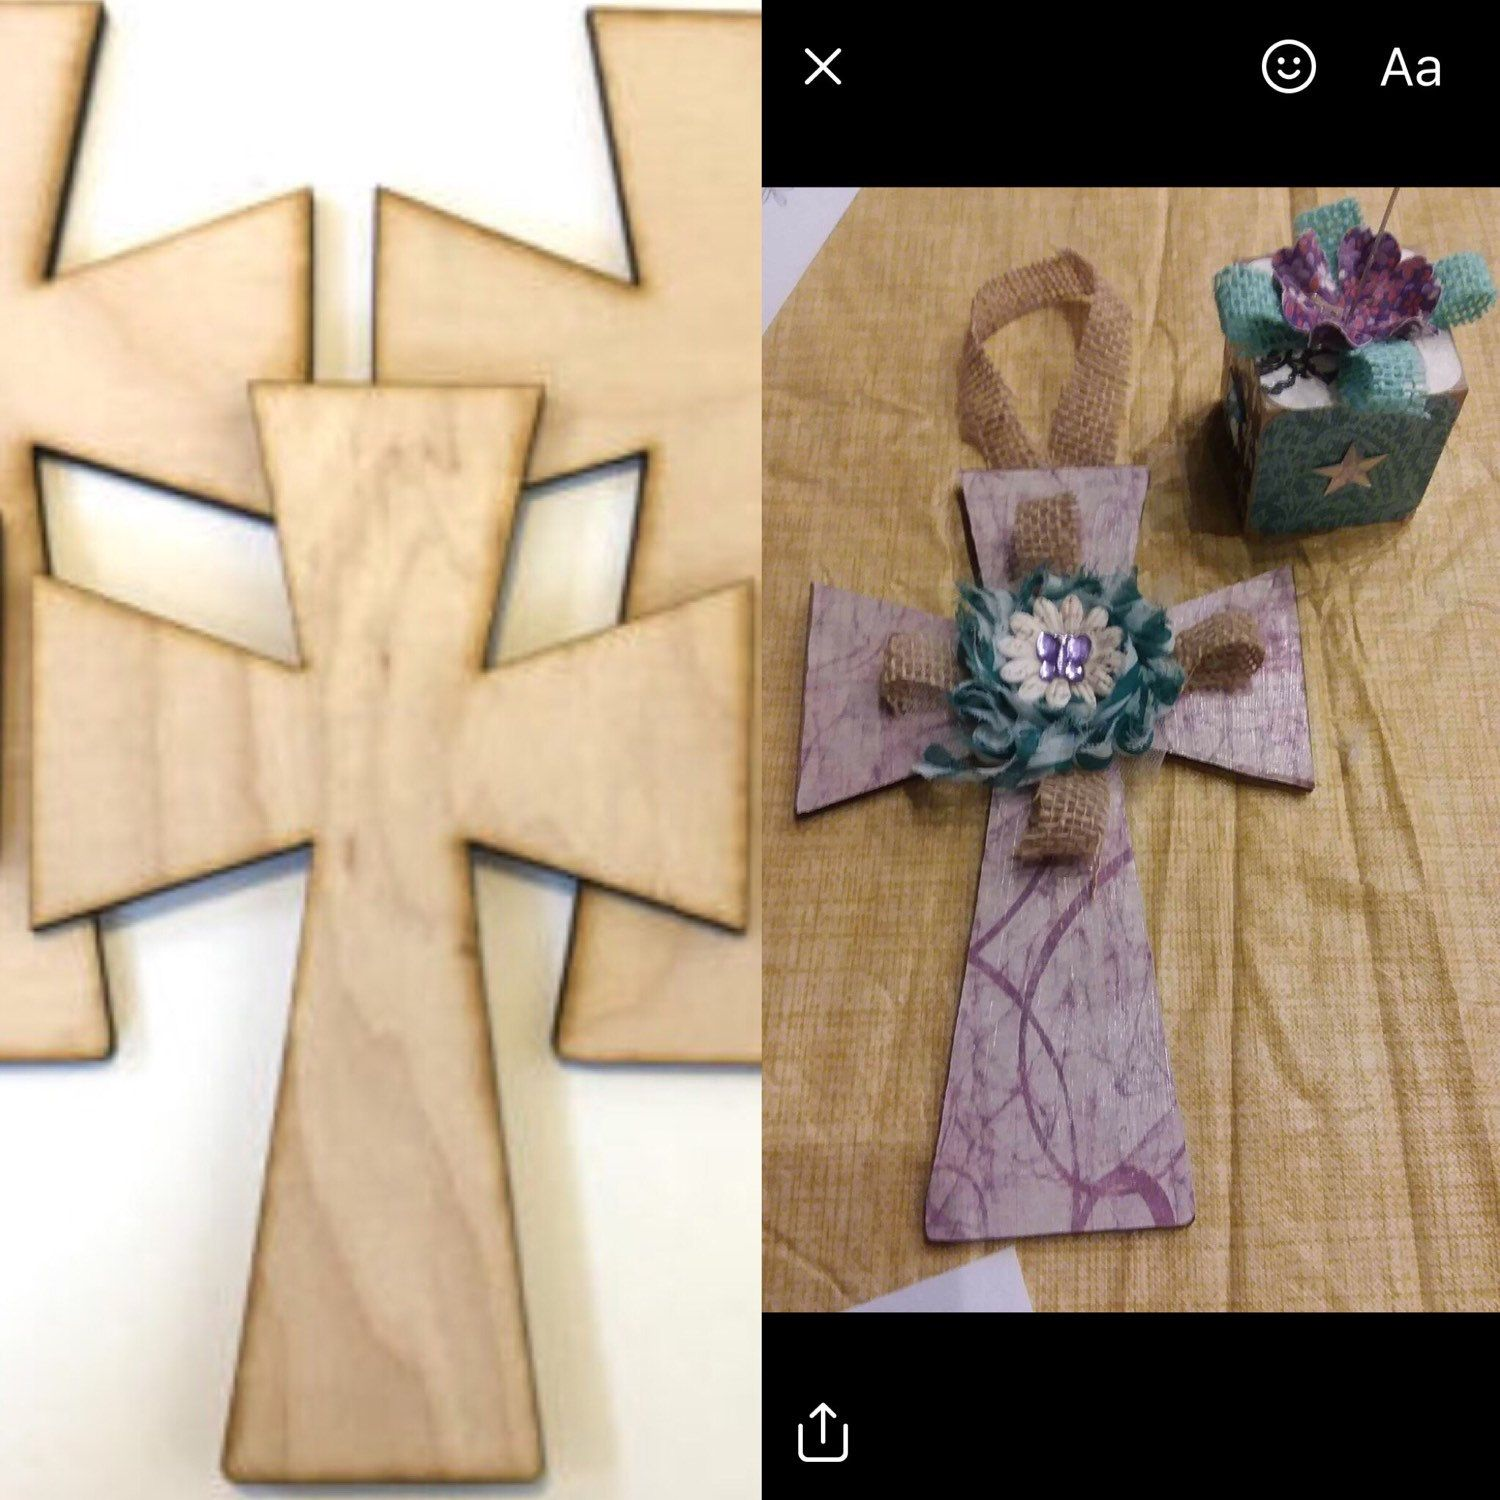 Unfinished wood craft products - Unfinished Wood Crosses Wood Cross Easter Supplies Easter Craft Supplies Religious Crafts Holiday Craft Supplies Wood Ornament